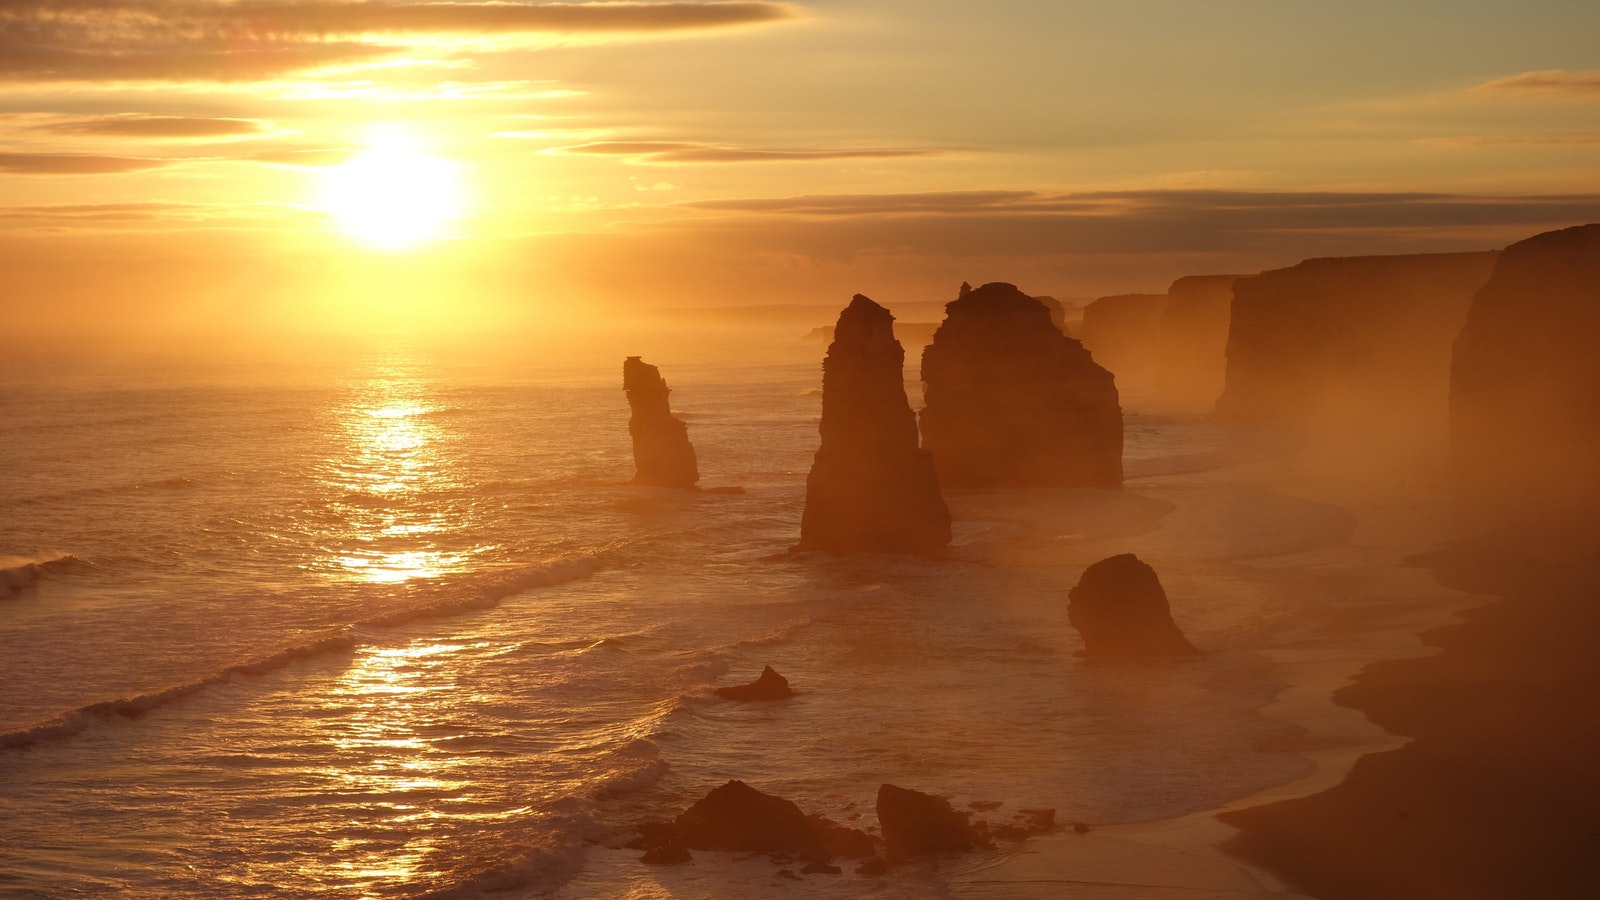 The 12 Apostles at sunset....simply stunning